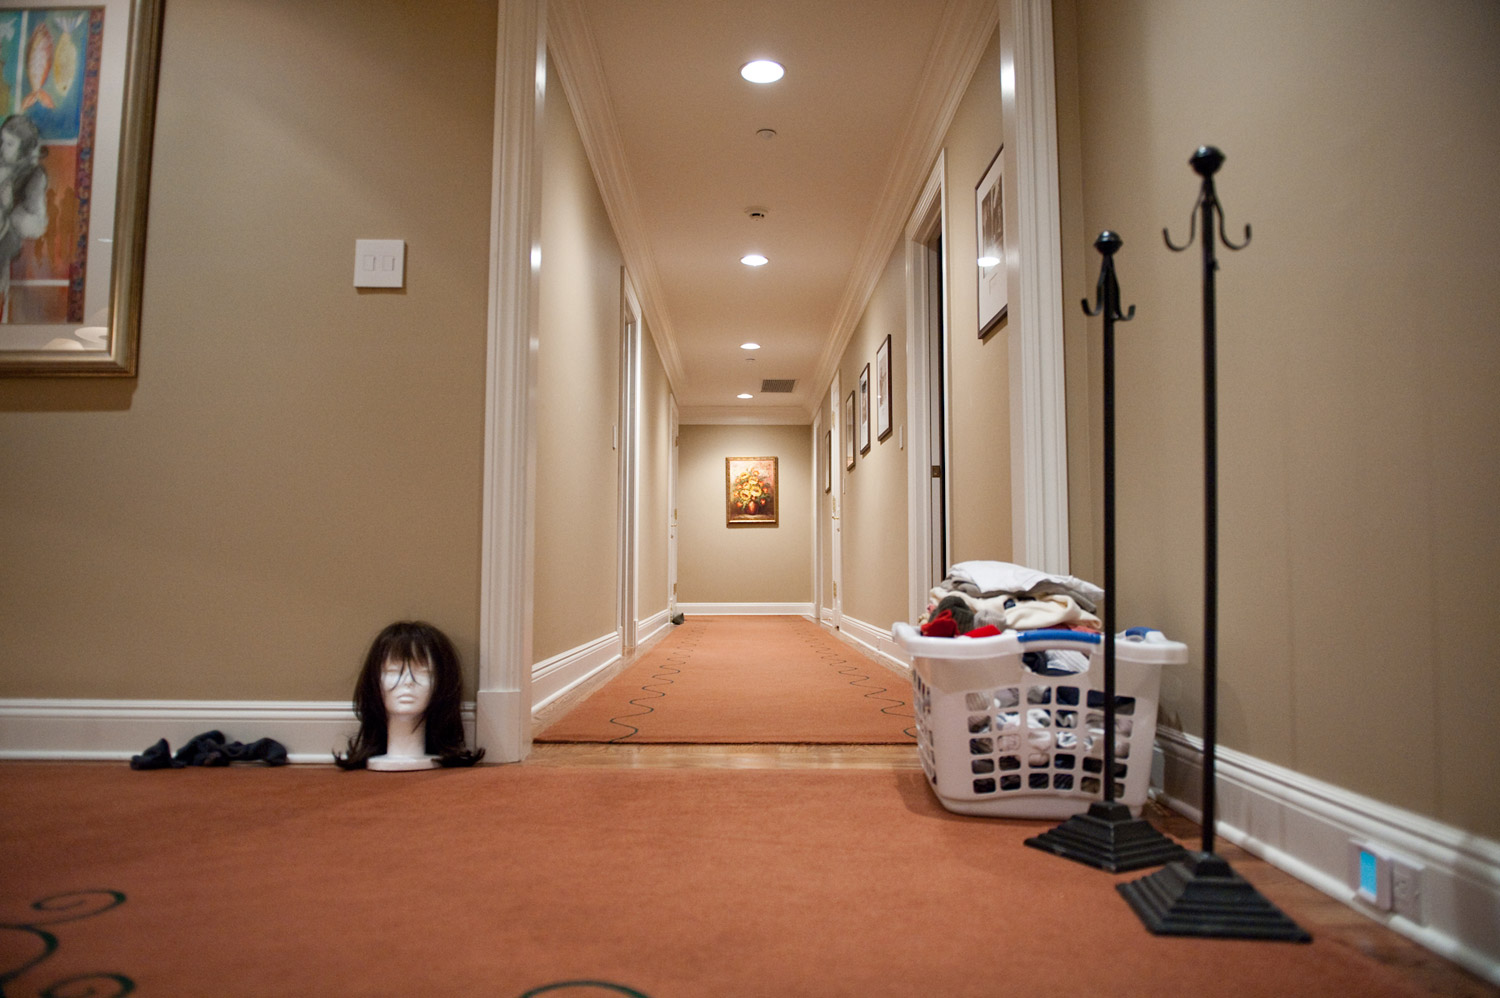 After cleaning the hallway of her home, Laurel Borowick notices that she had relegated the wig, which was once important to her, to the same level or importance as the laundry, April 2010.